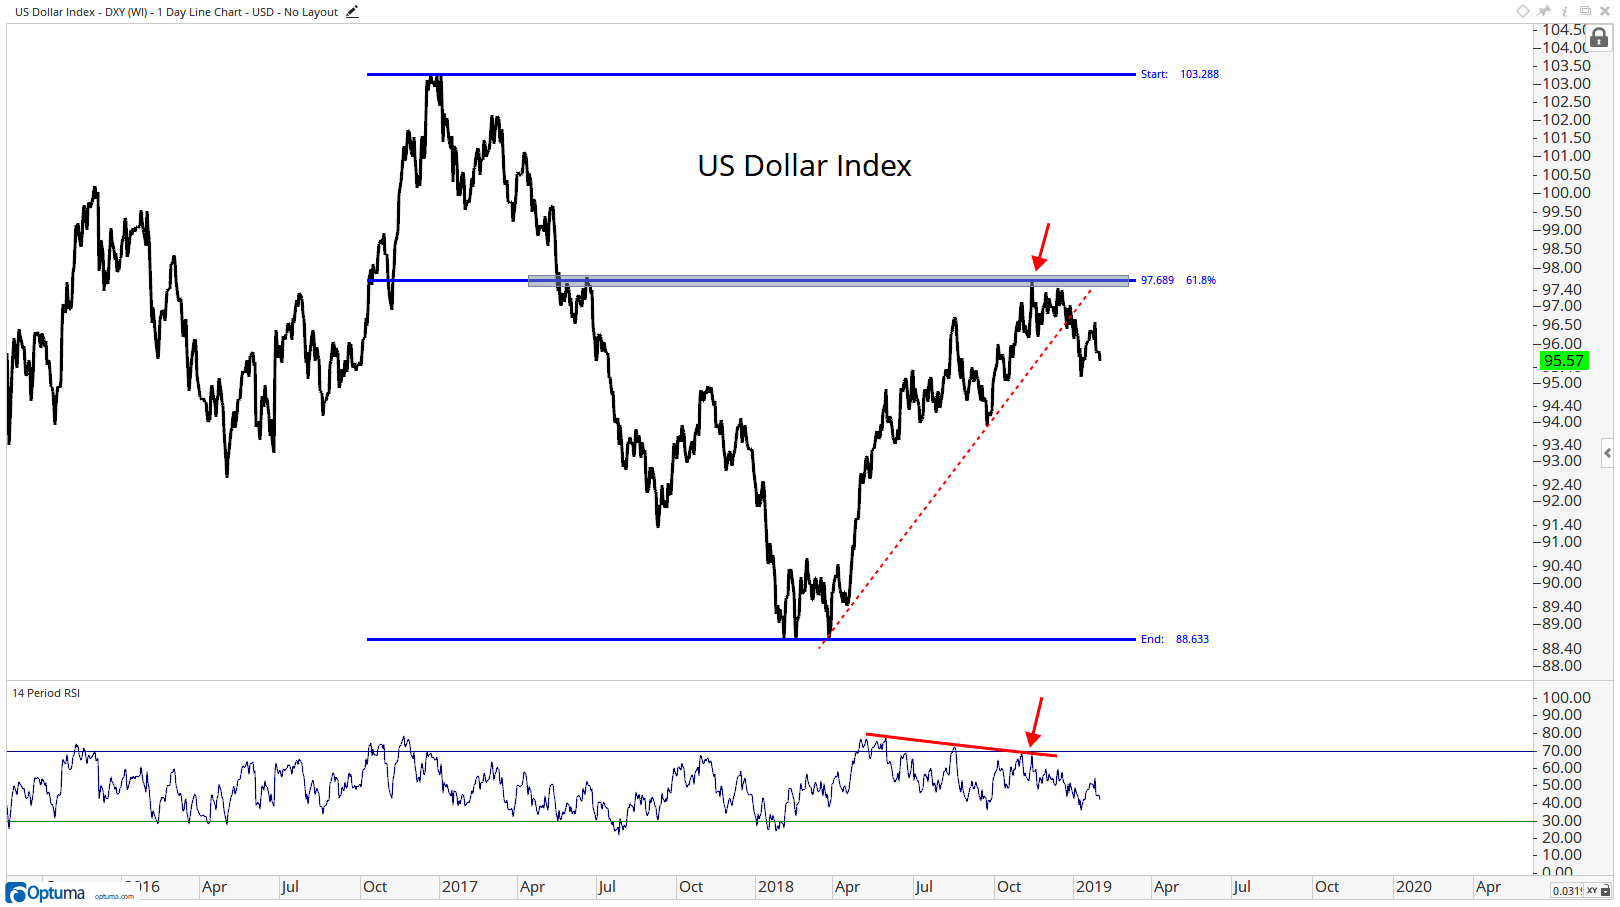 This Is Exactly What We Ve Seen Throughout January A Weaker Dollar And Higher Stock Prices